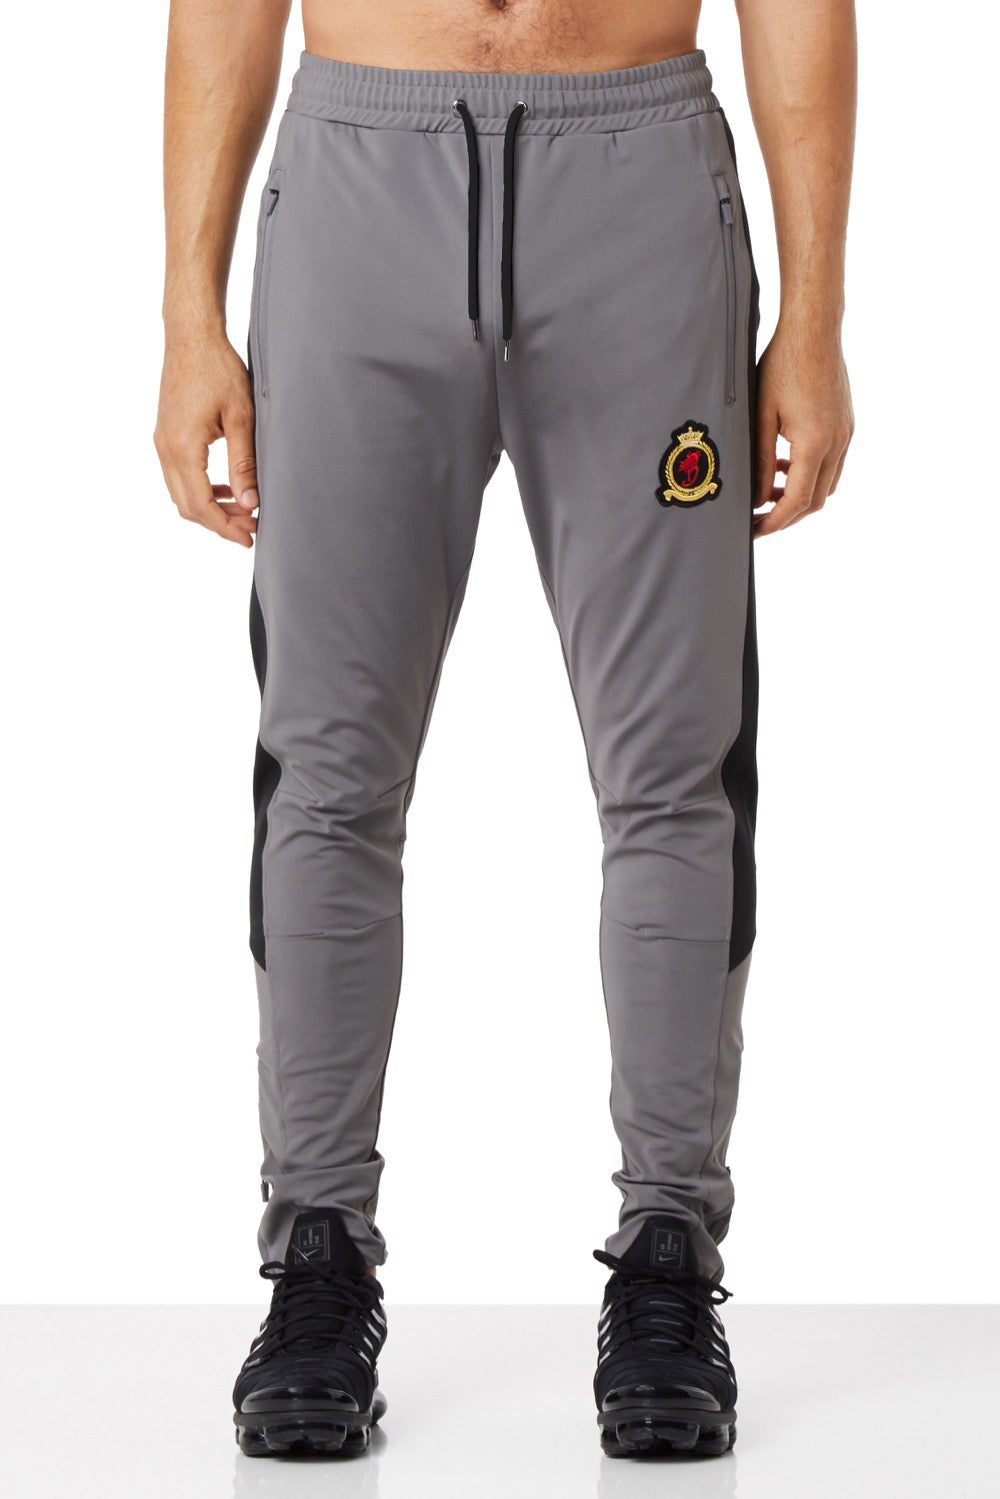 Benjart Sport Phantom Grey Track Bottoms